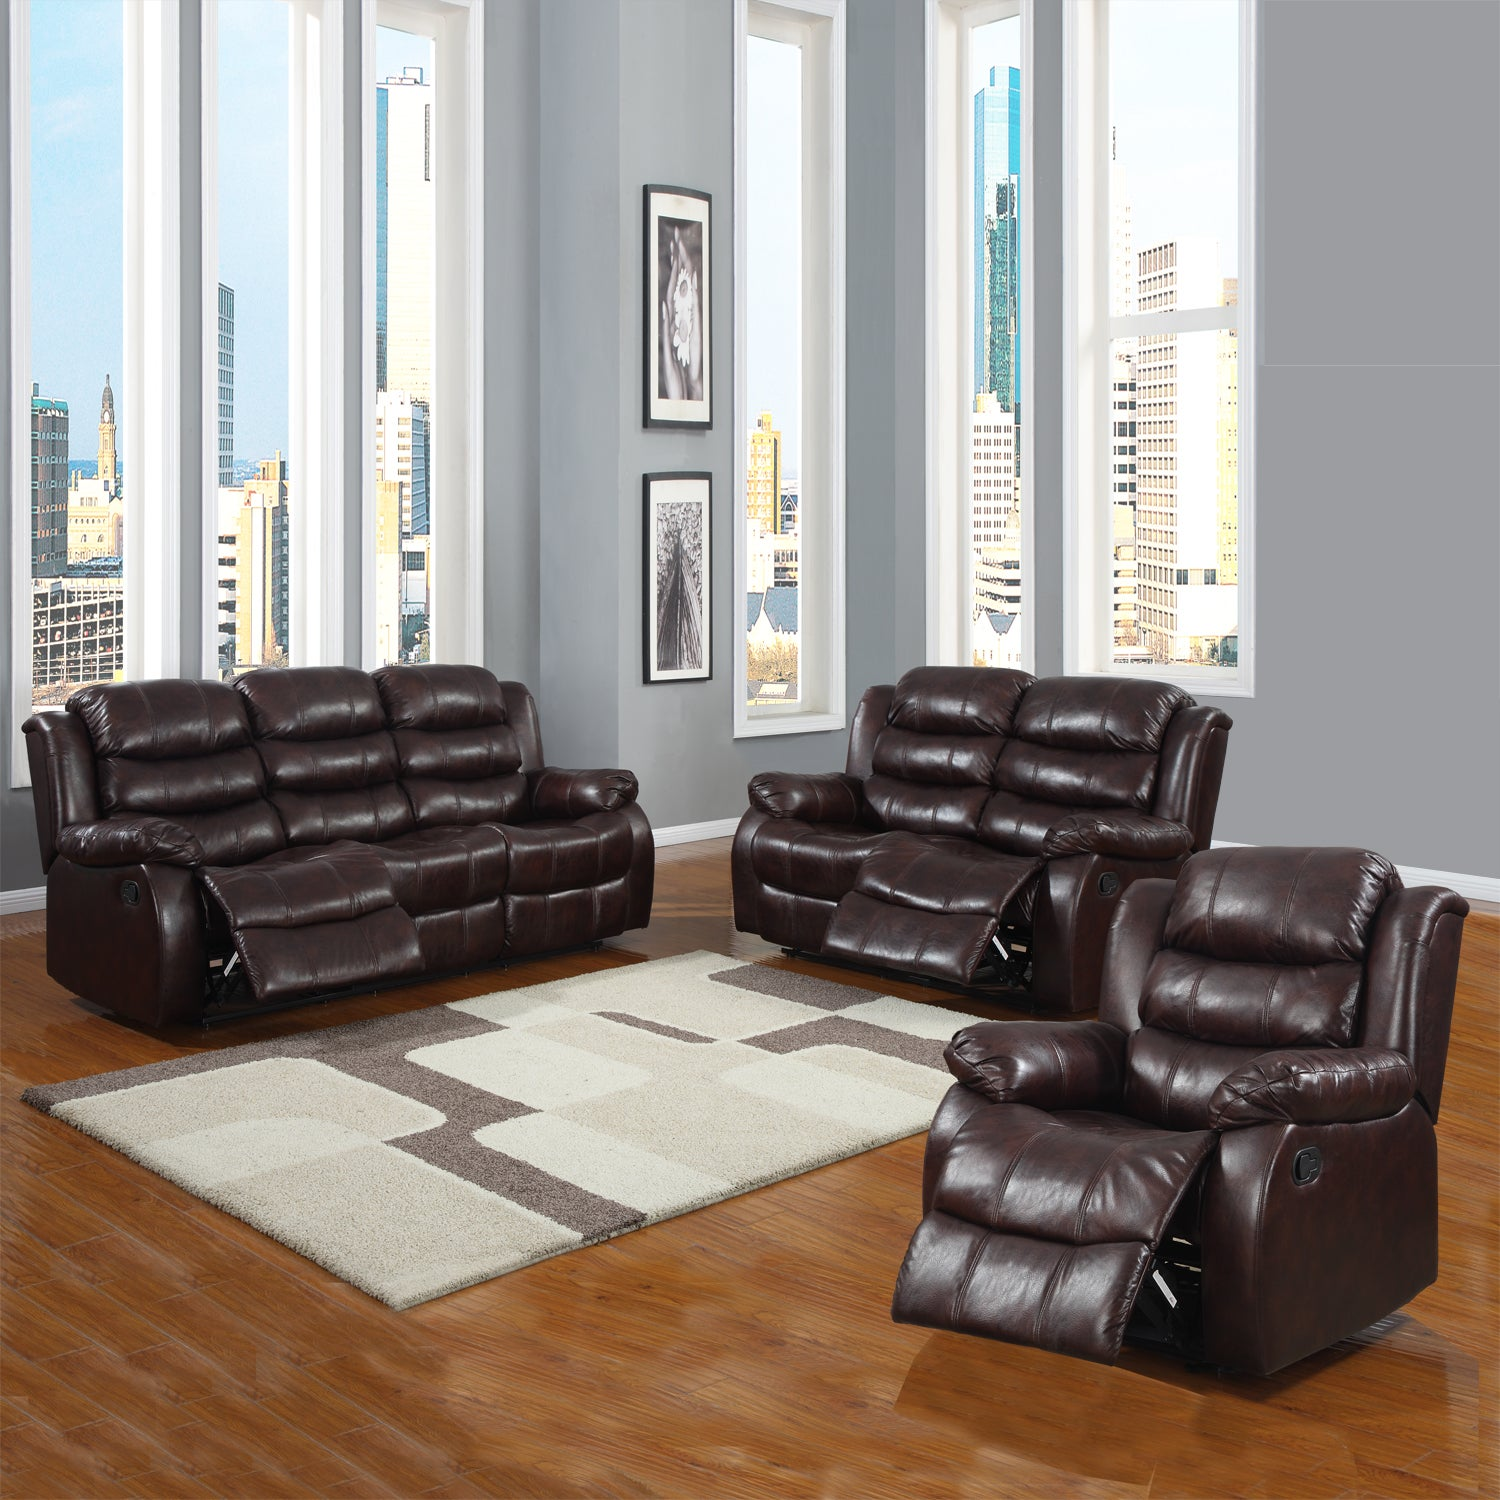 Buxton Burgundy Polished Microfiber 3-piece Reclining Living Room Set